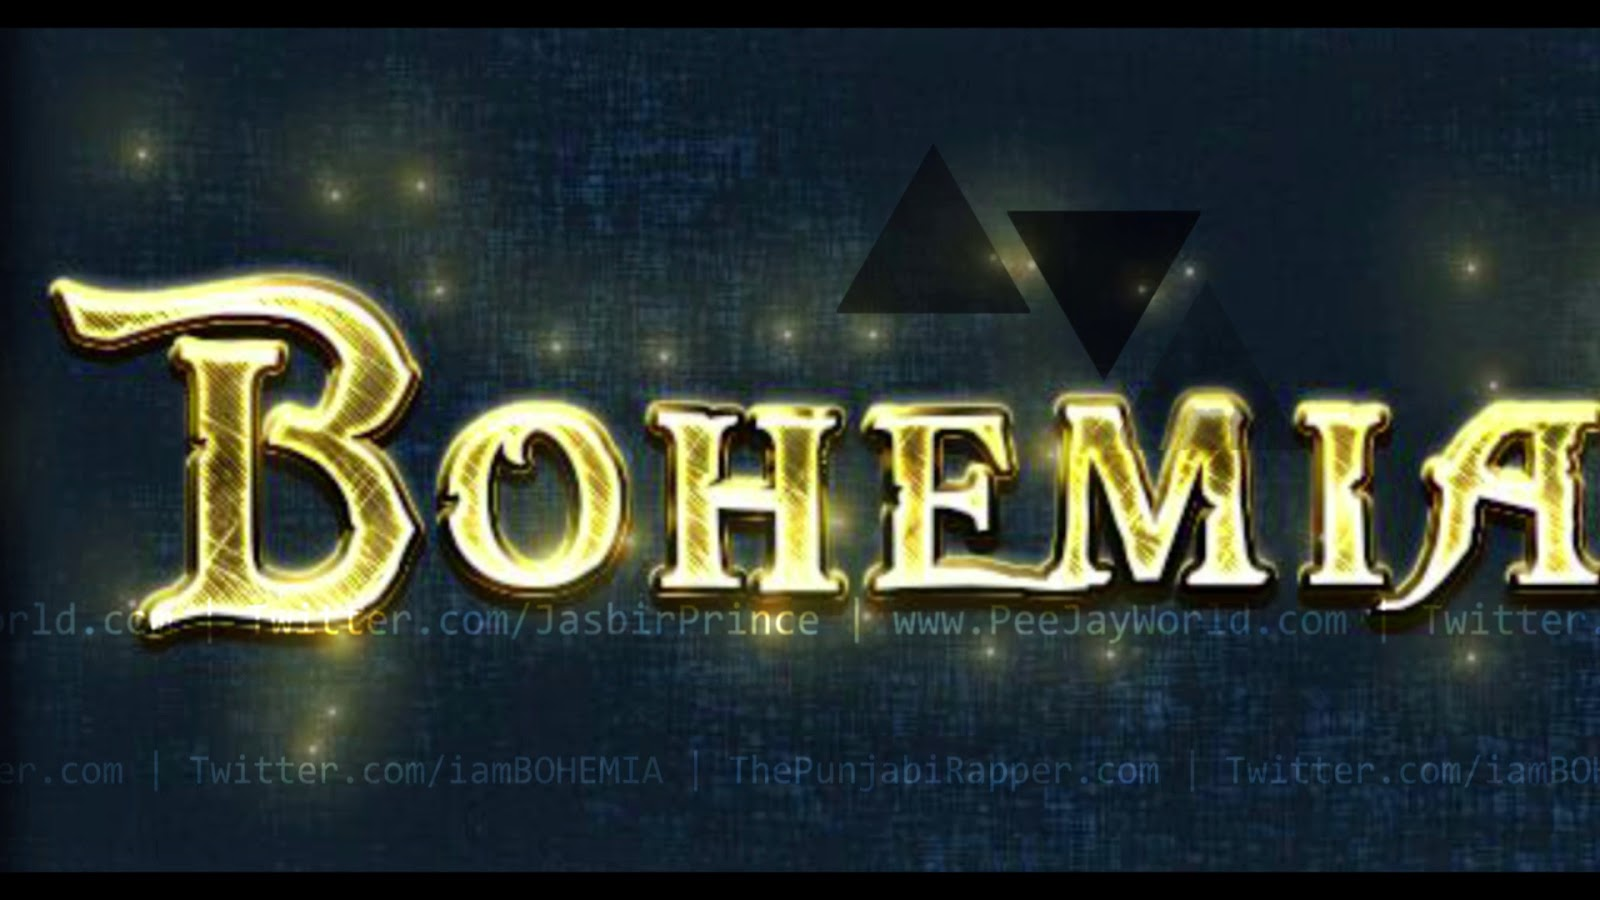 BOHEMIA the Punjabi Rapper - Nachiye (Fan Made Video) DesiHipHop - Pee Jay World